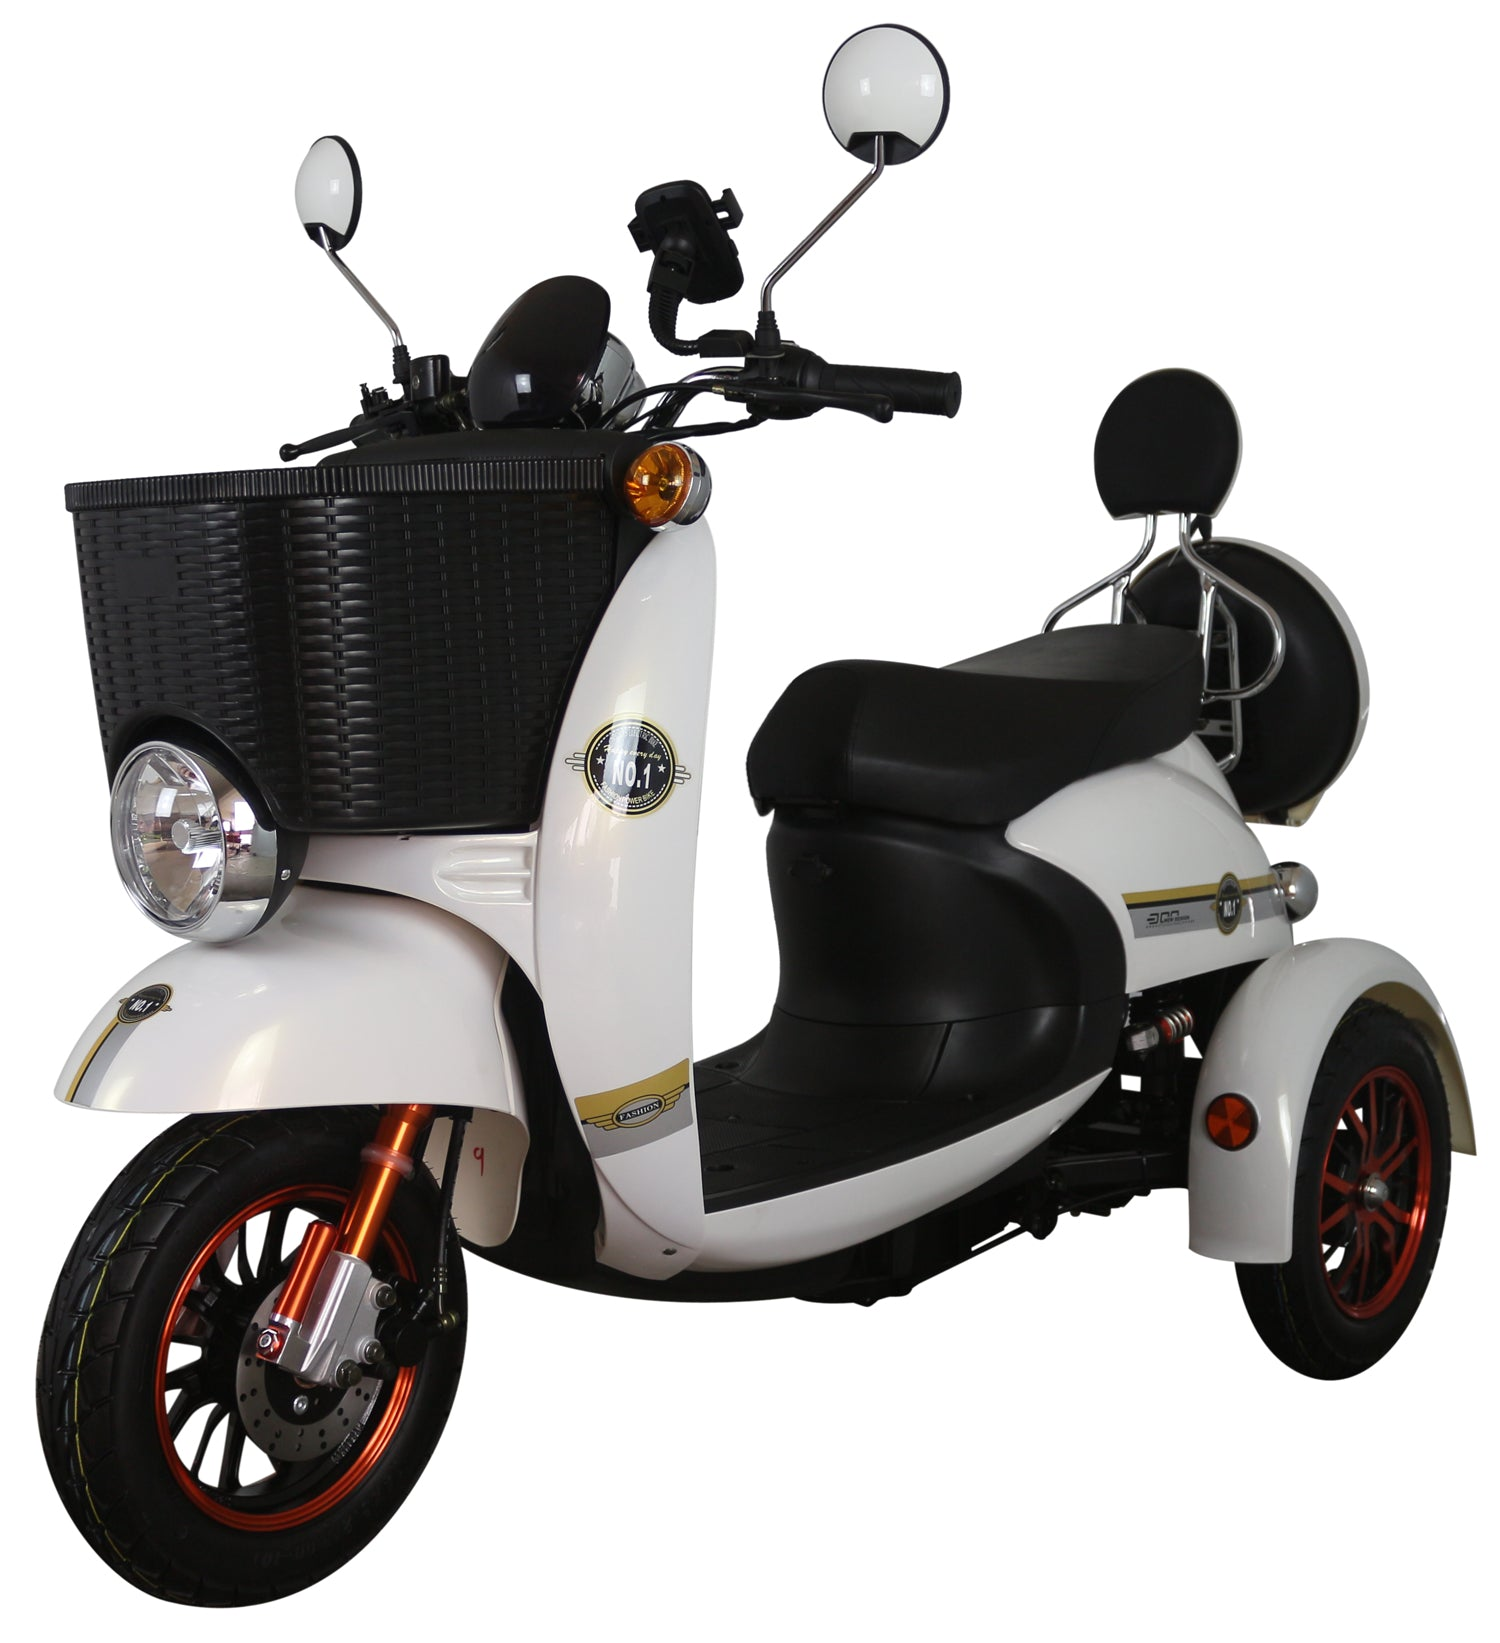 Unique 500 Mod Style Road Legal Long Range Mobility Scooter